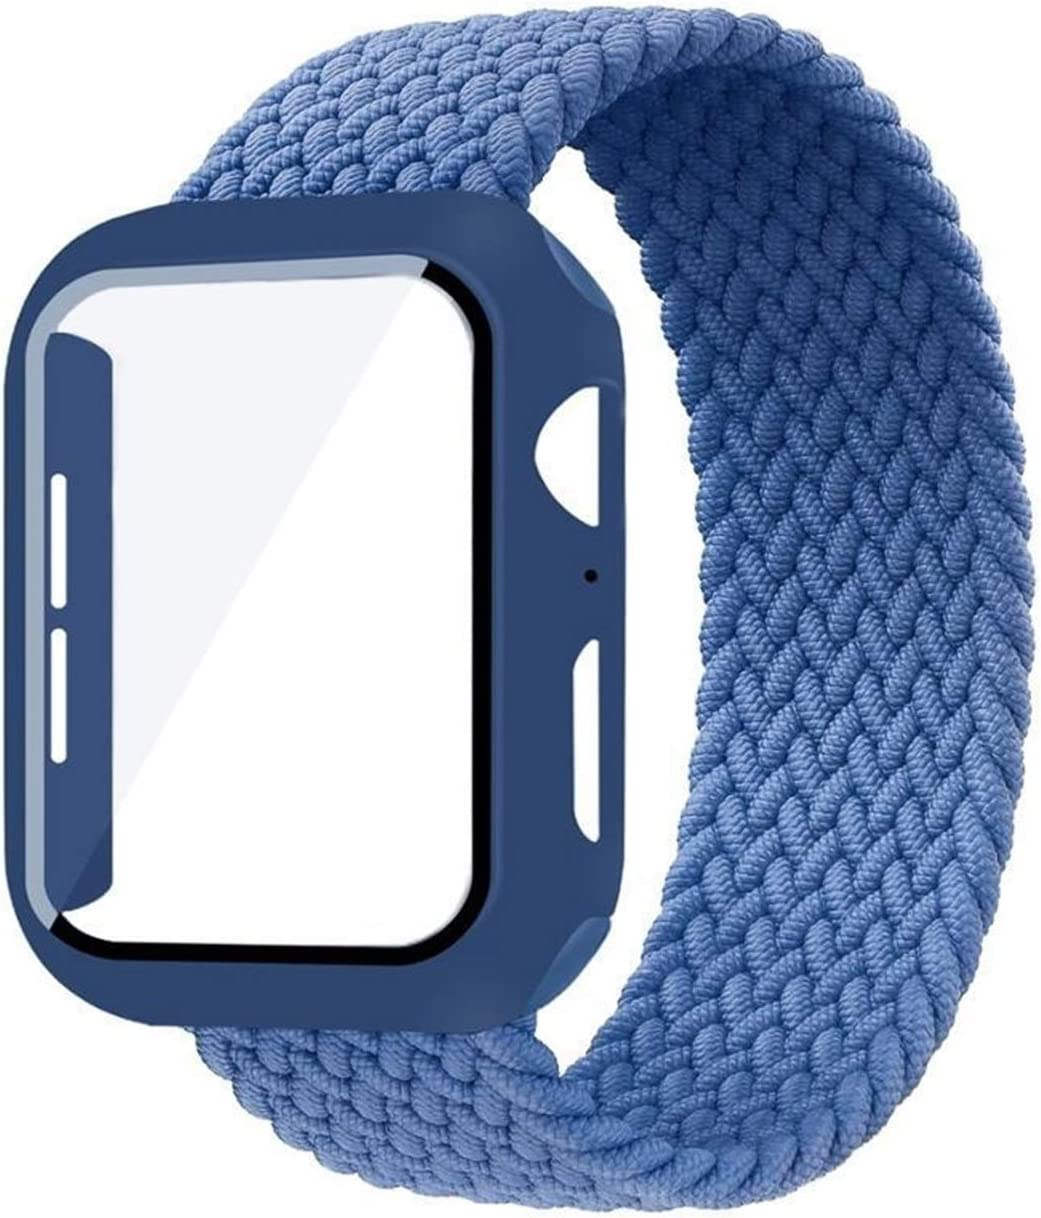 LLMXFC Case+Strap for Apple Watch Band Year-end gift 40mm 44mm 42mm 38mm Brace Indianapolis Mall